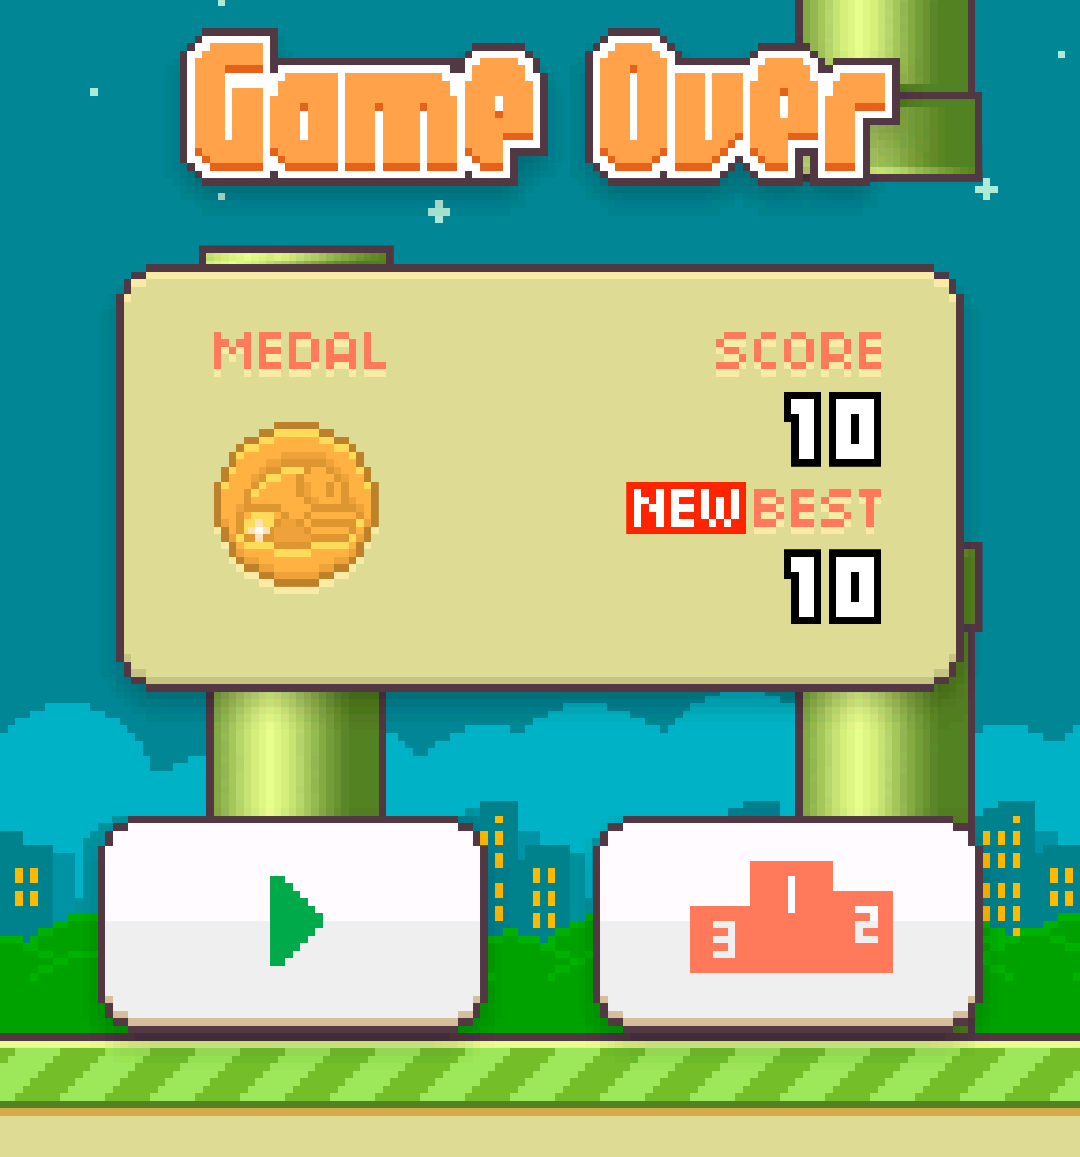 Twitter / echenze: I made it! Finally scored 10 ...